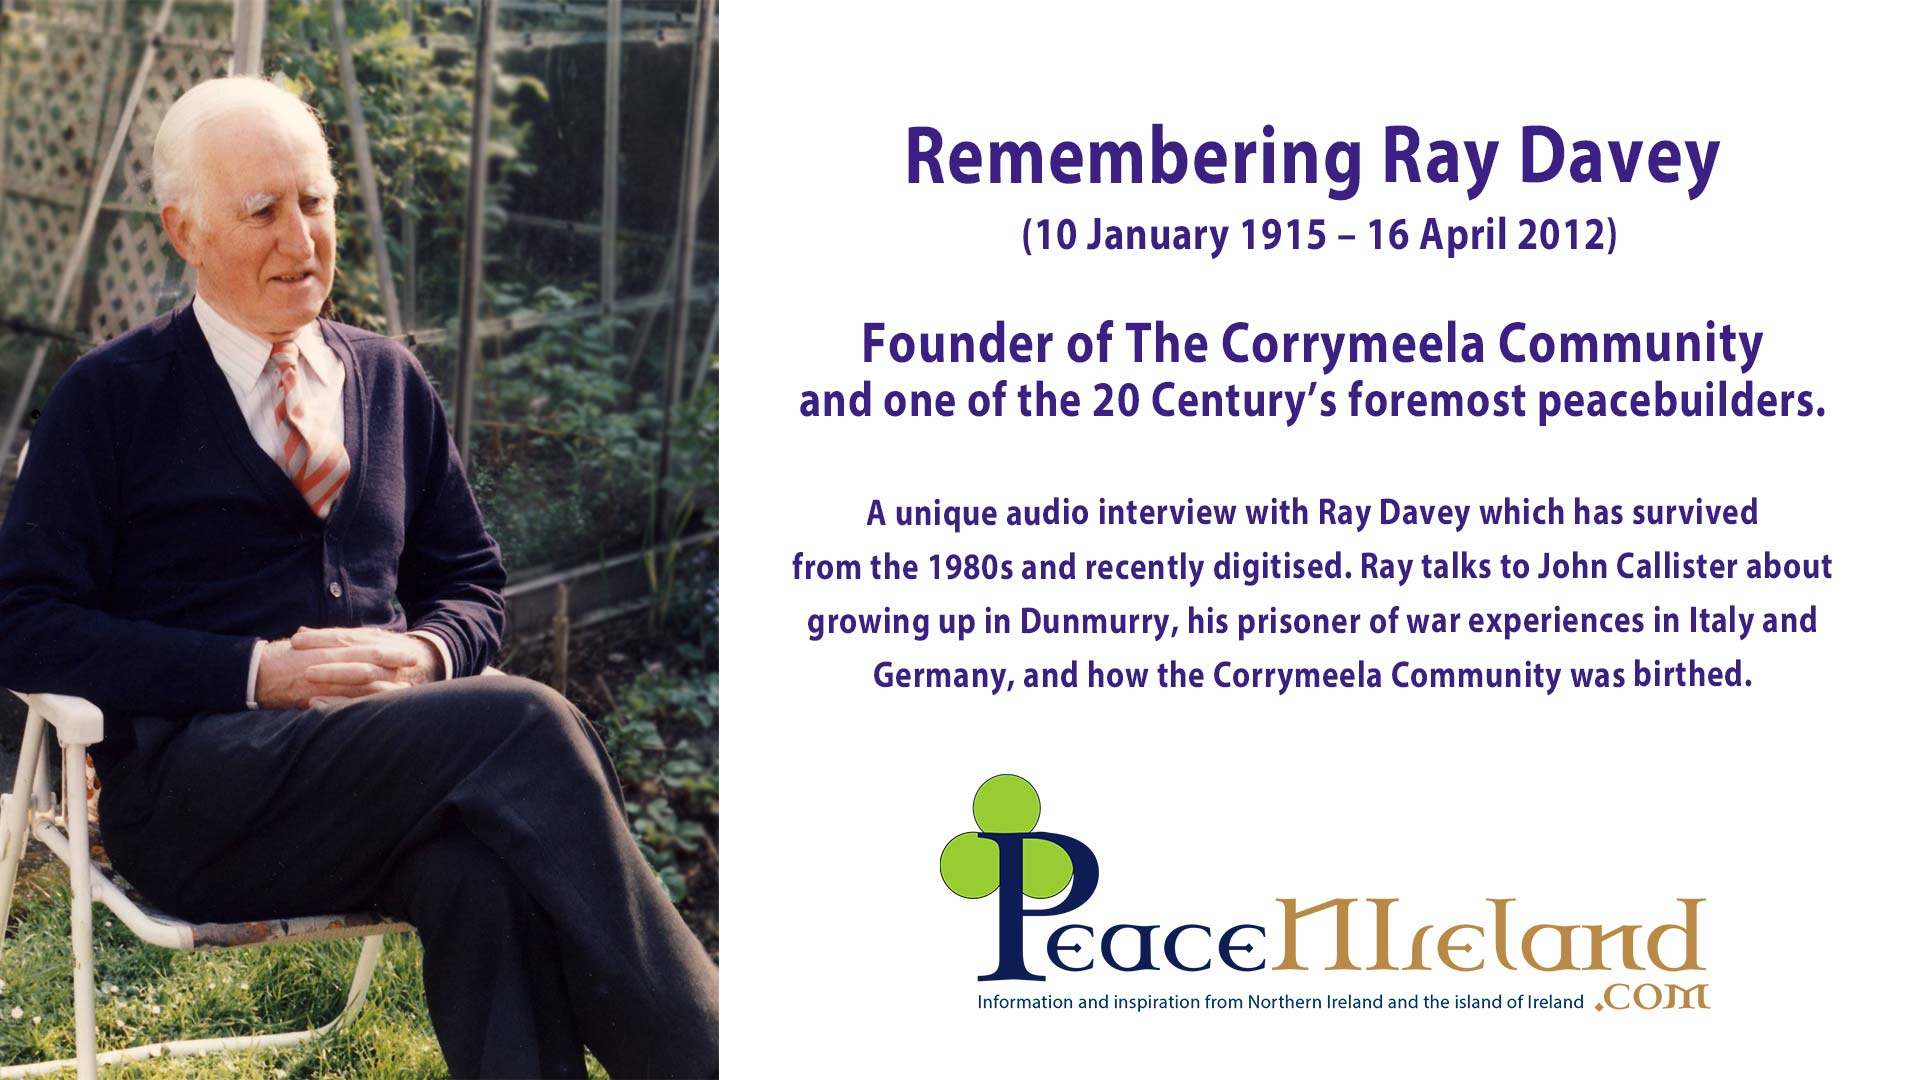 Celebrating the life of Ray Davey to mark  the anniversary of his passing (Friday 16th April 2021).